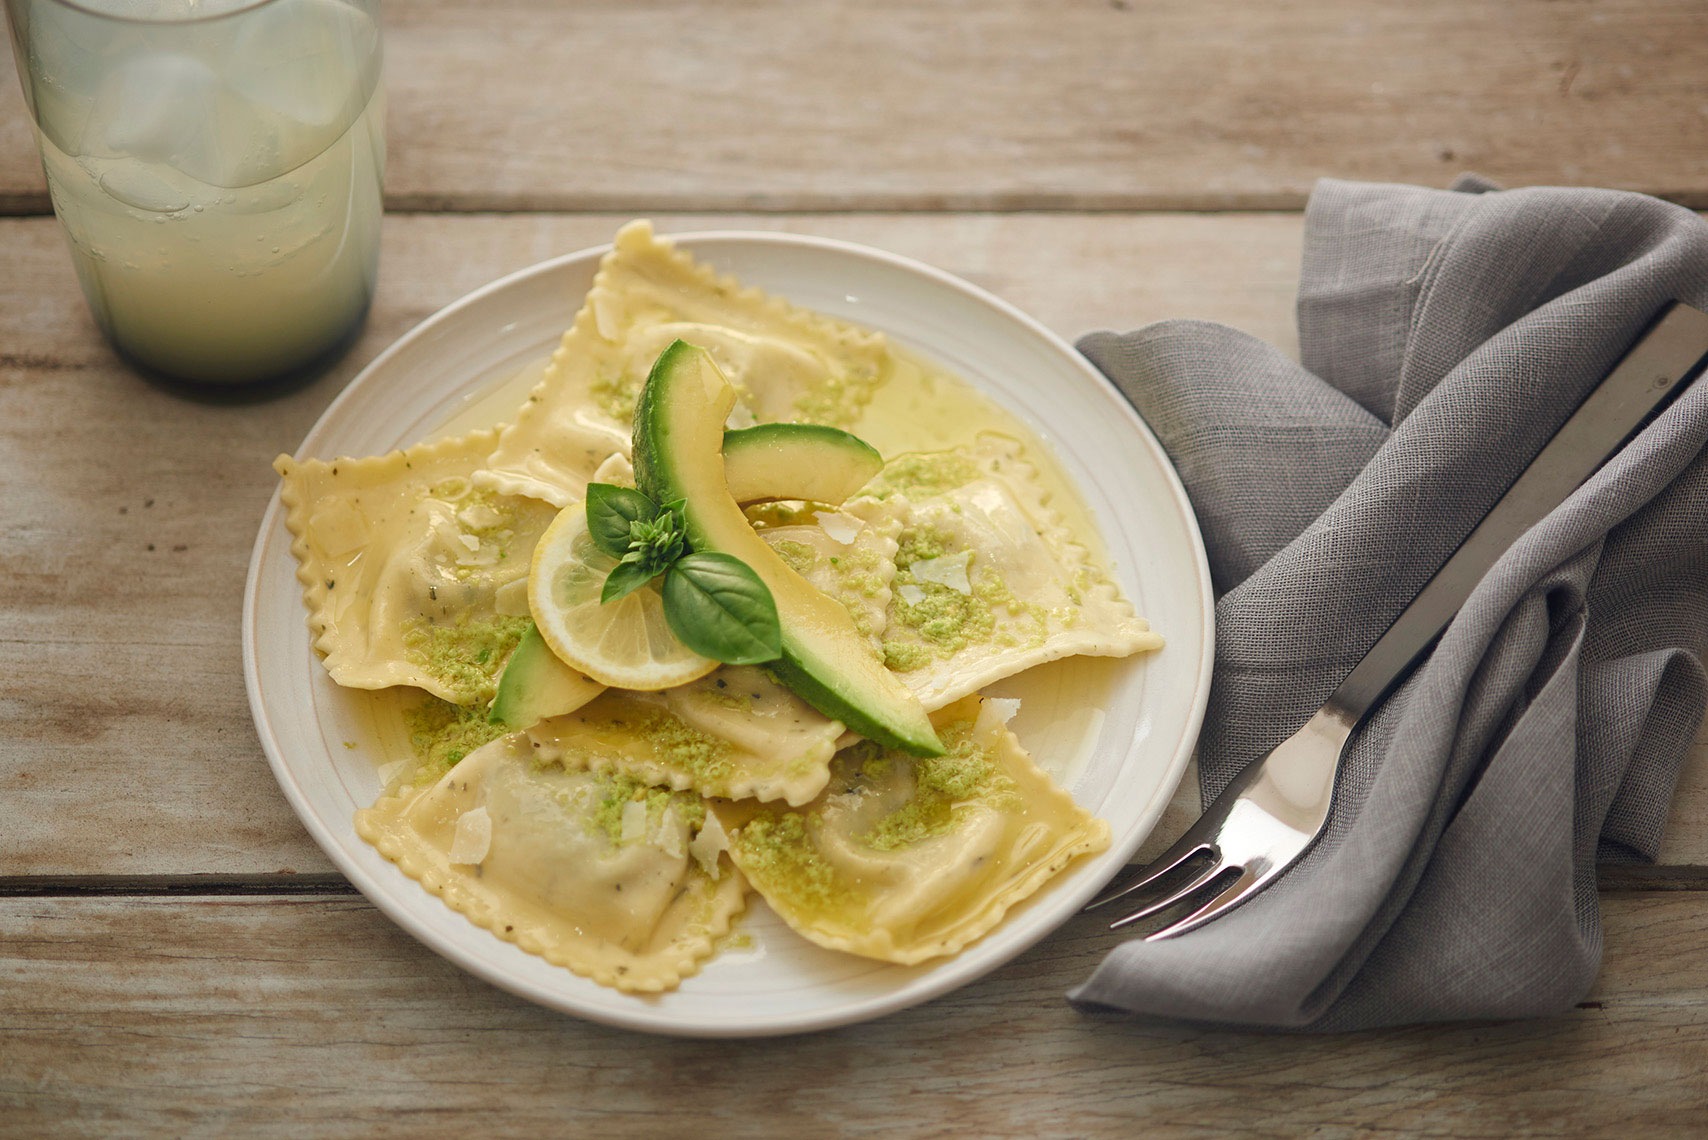 Lemon-ricotta-ravioli-with-avocado-sauce-parmesean-cheese-and-fresh-basil-garnish-by-Los-Angeles-food-photographer